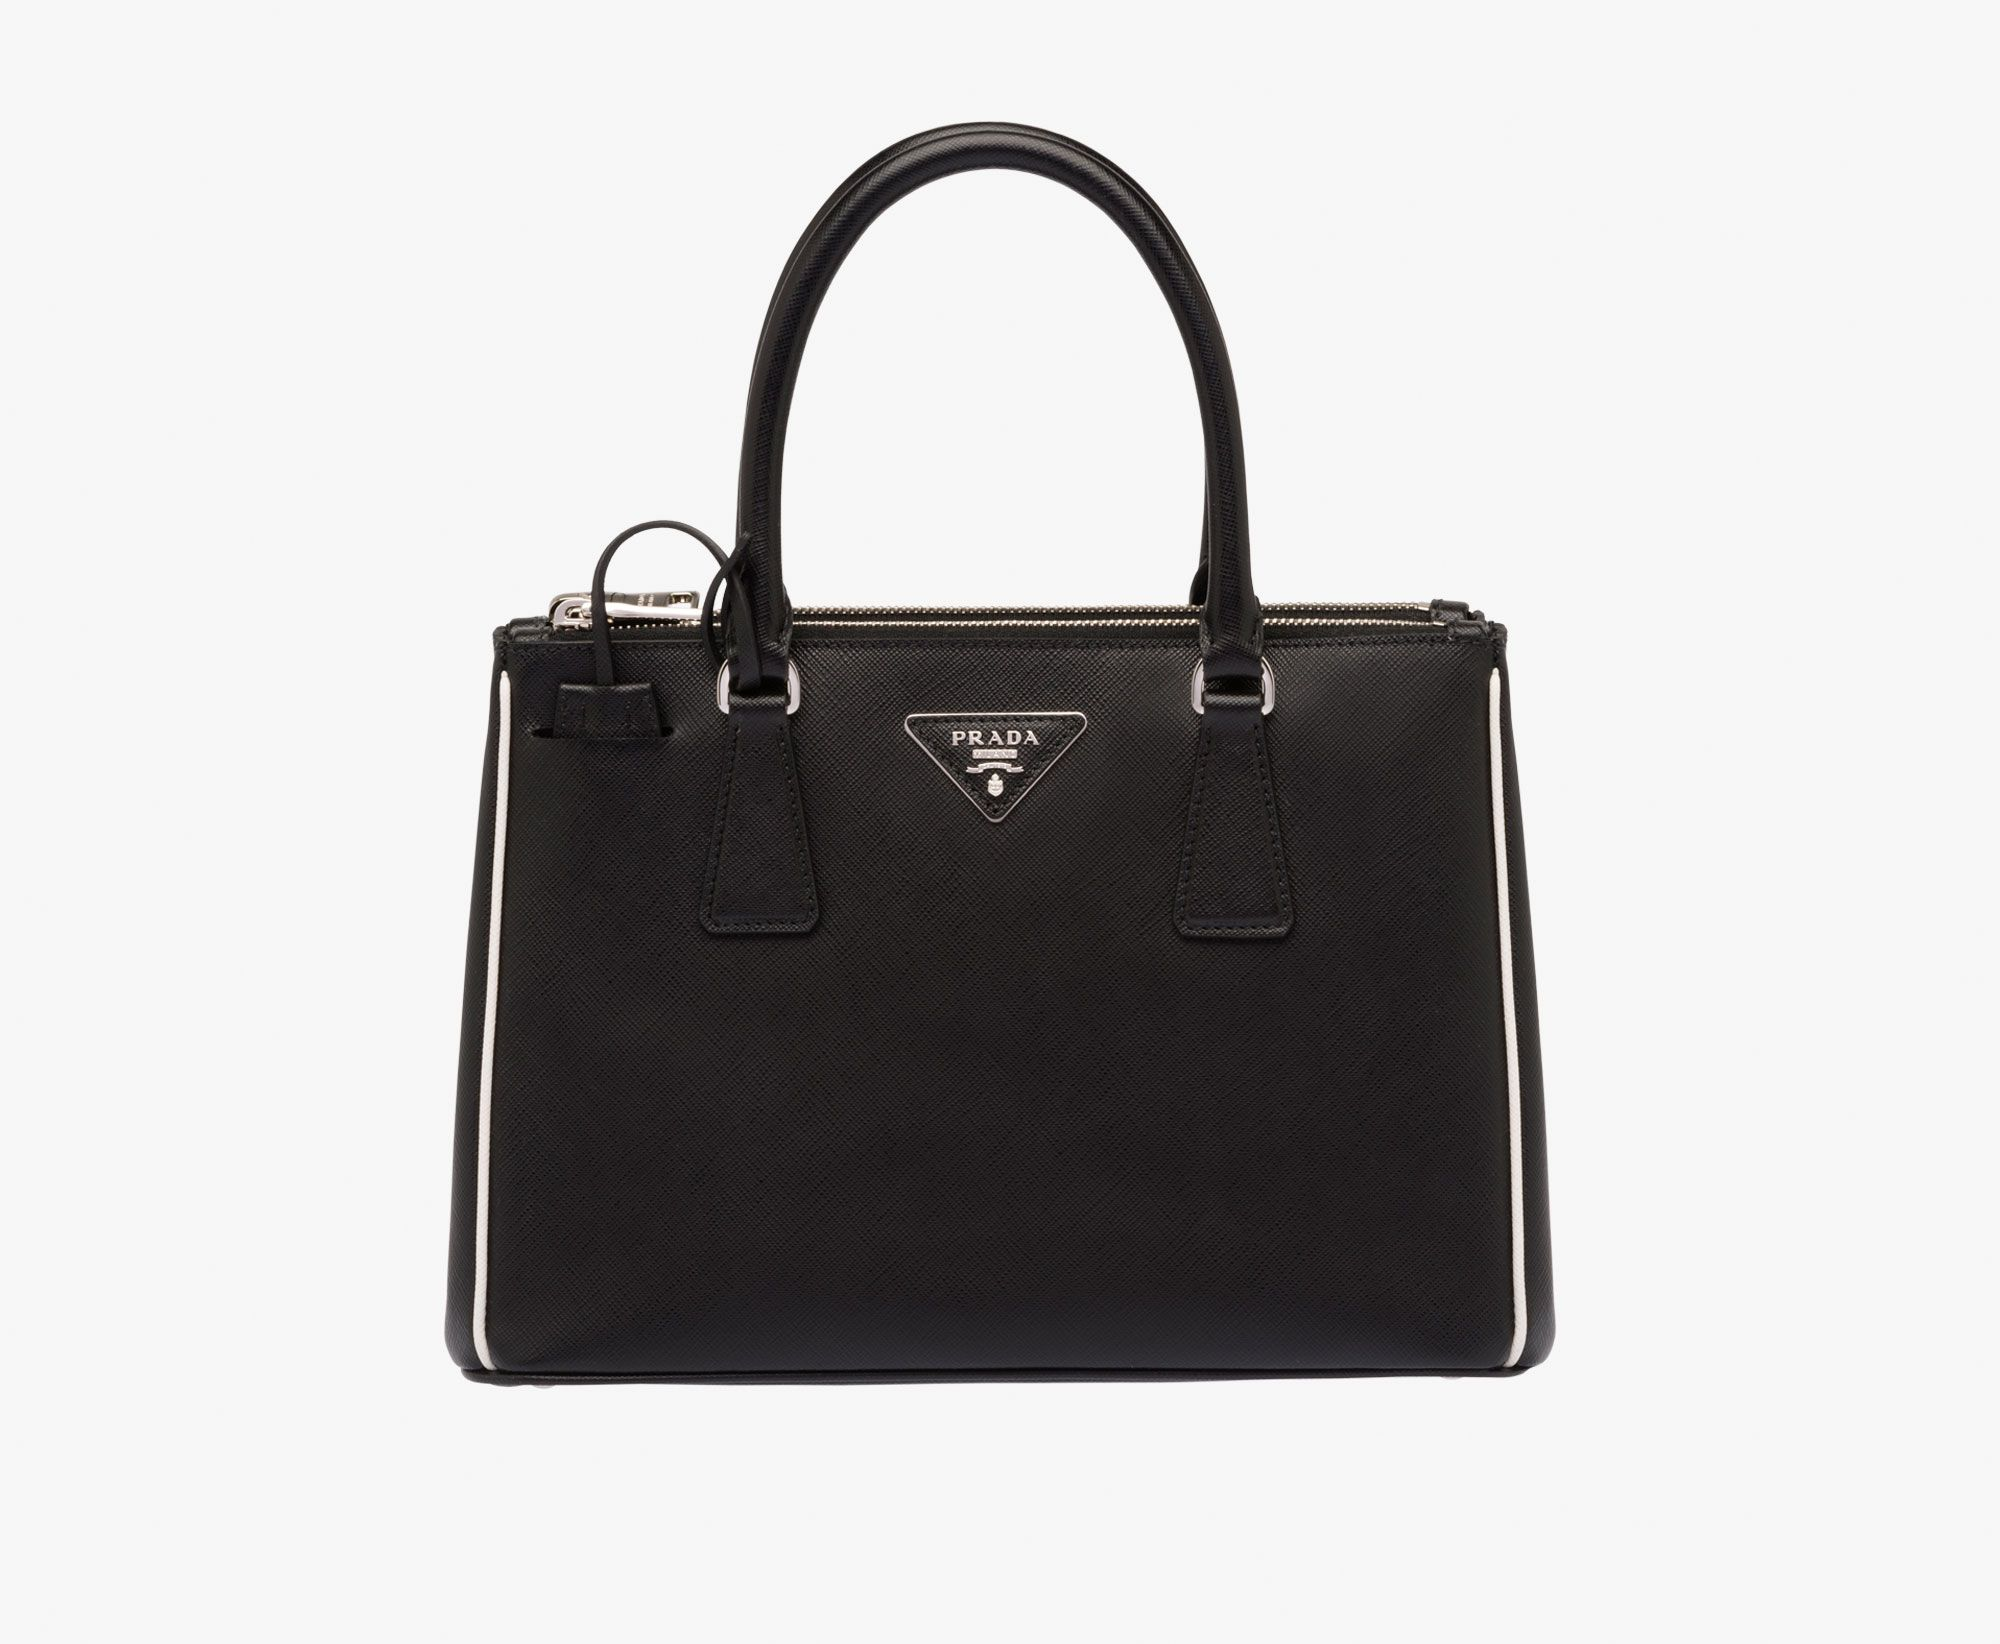 ... leather saffiano 2c910 f4d92  low price prada galleria bag with  contrast piping fd5c8 44237 d56abb31197f8